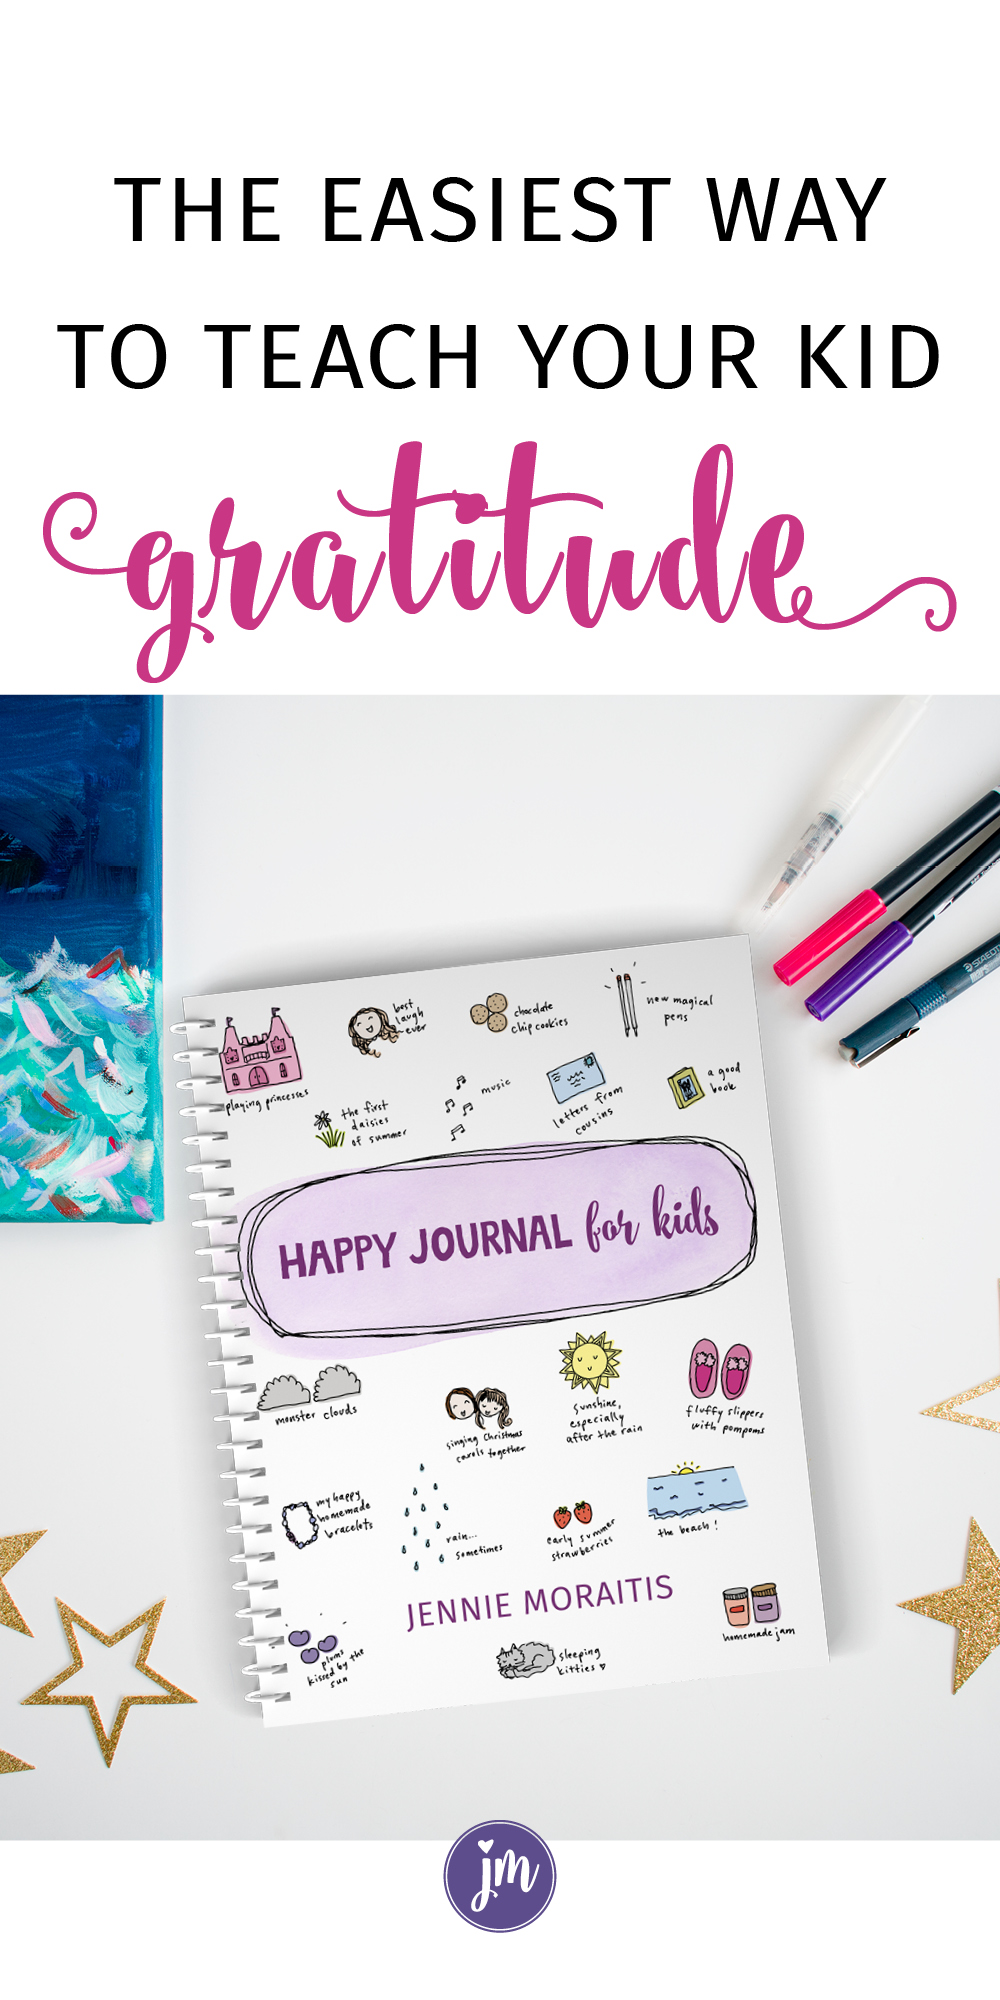 Oh my goodness, I love this gratitude journal for kids! I printed one out and my daughter filled almost the entire thing up the FIRST day! She had so much fun thinking about the things that make her happy, and I was inspired to join in with a happy journal of my own. Perfect for kids of all ages! :) #happyjournalhappylife #gratitudejournal #gratitudejournalforkids